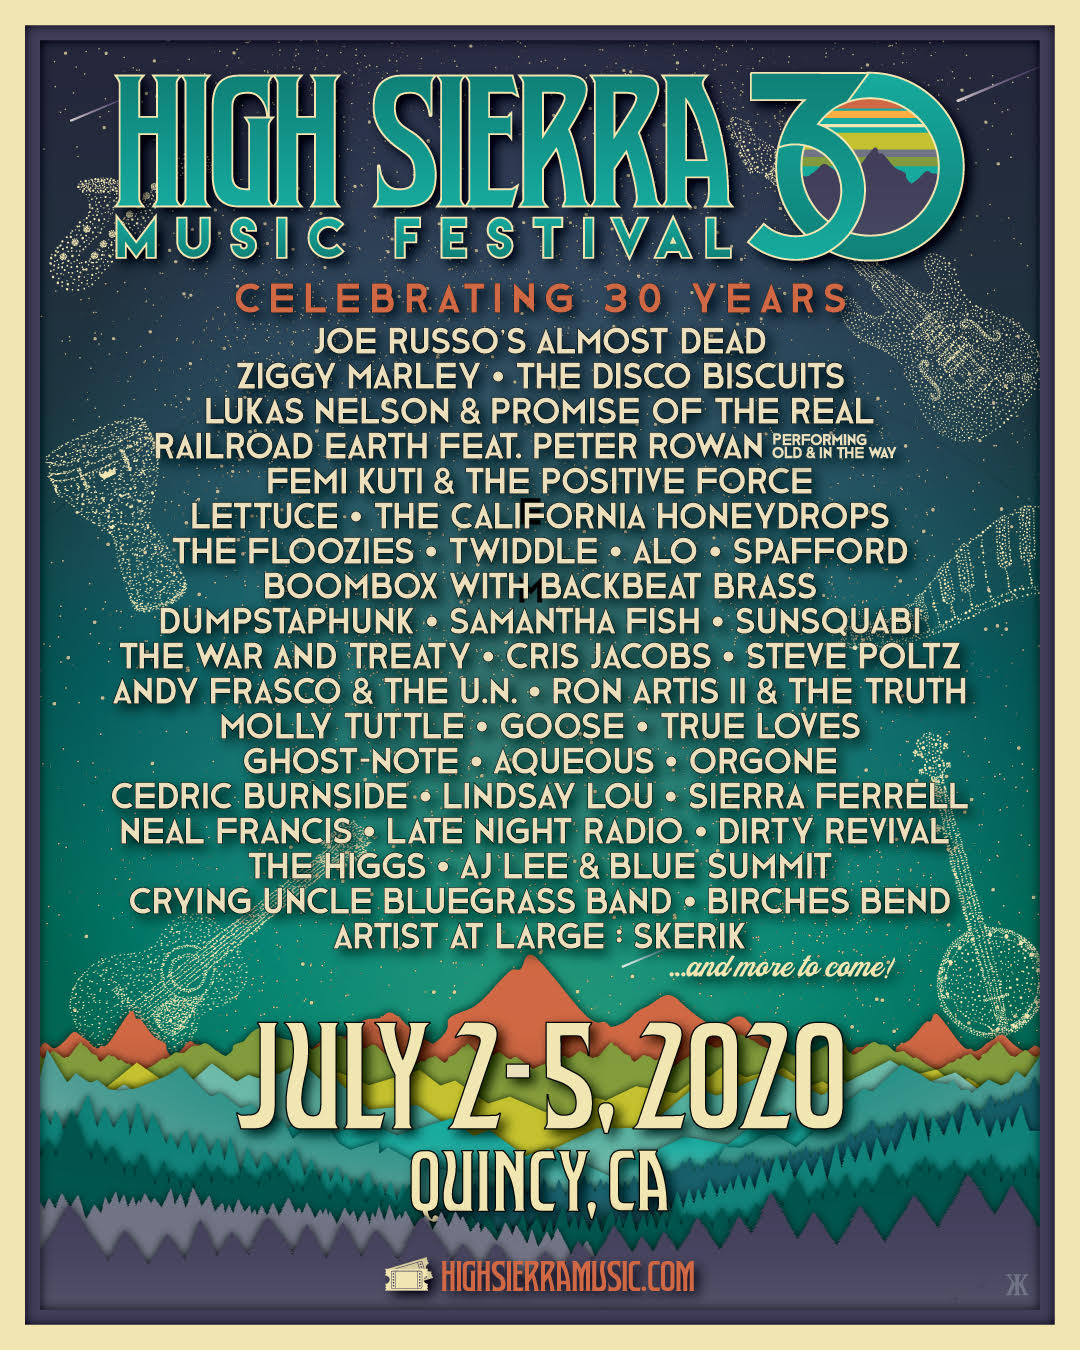 Ziggy Marley Set To Perform At High Sierra Music Festival 30th Year Celebration